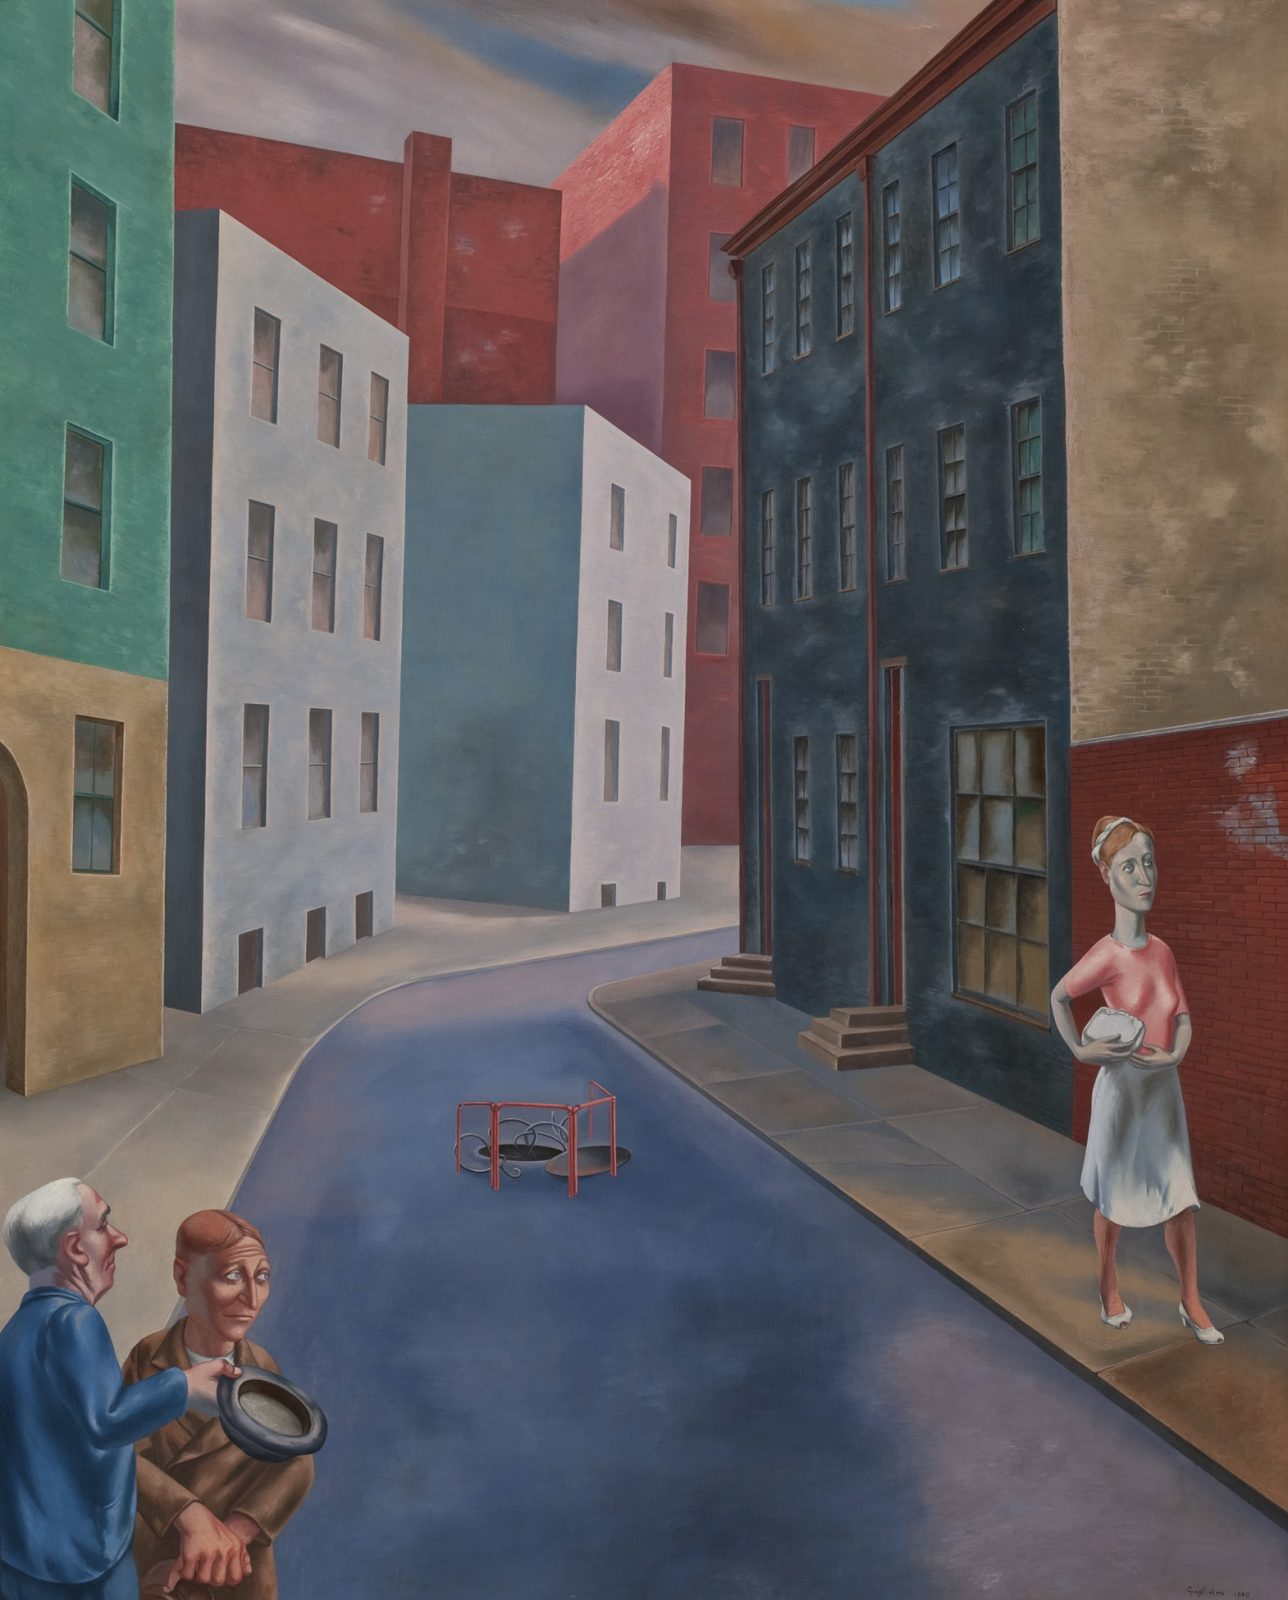 This work by O. Louis Guglielmi depicts two men and a woman in a street